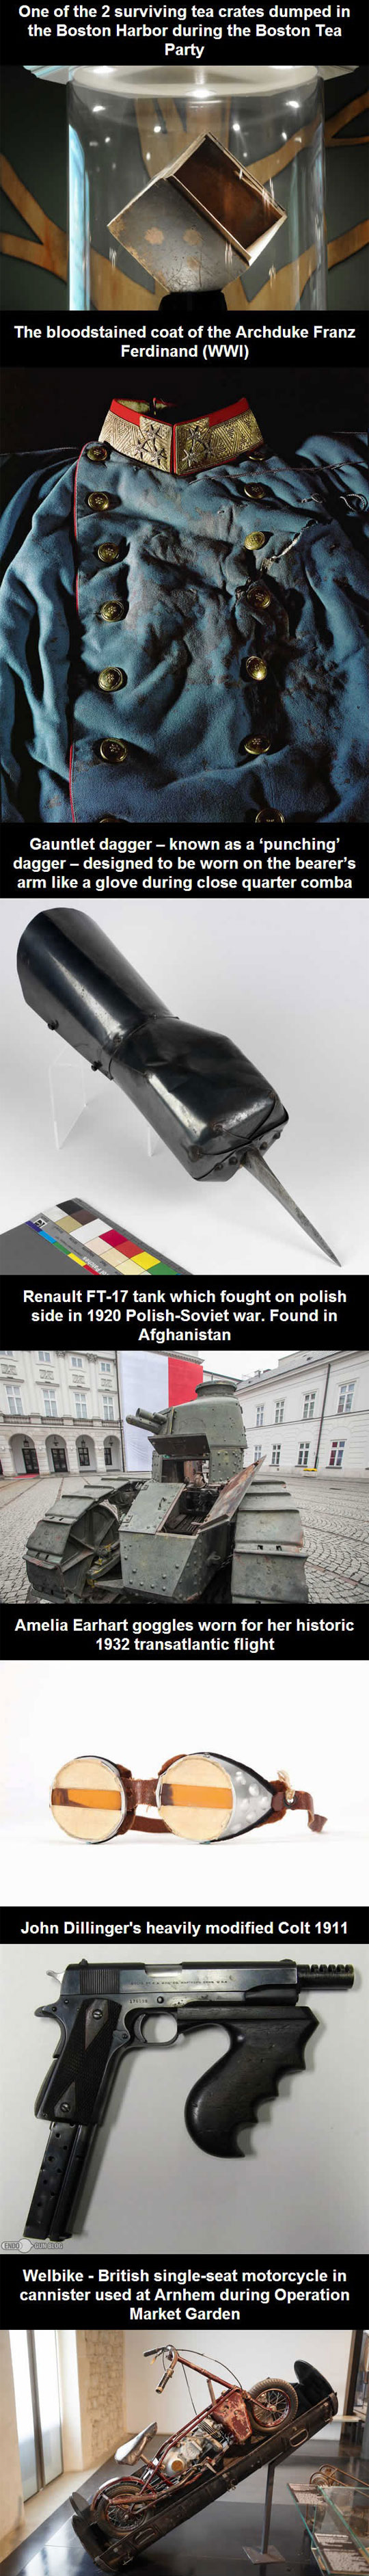 cool-history-objects-important-humanity-weapon